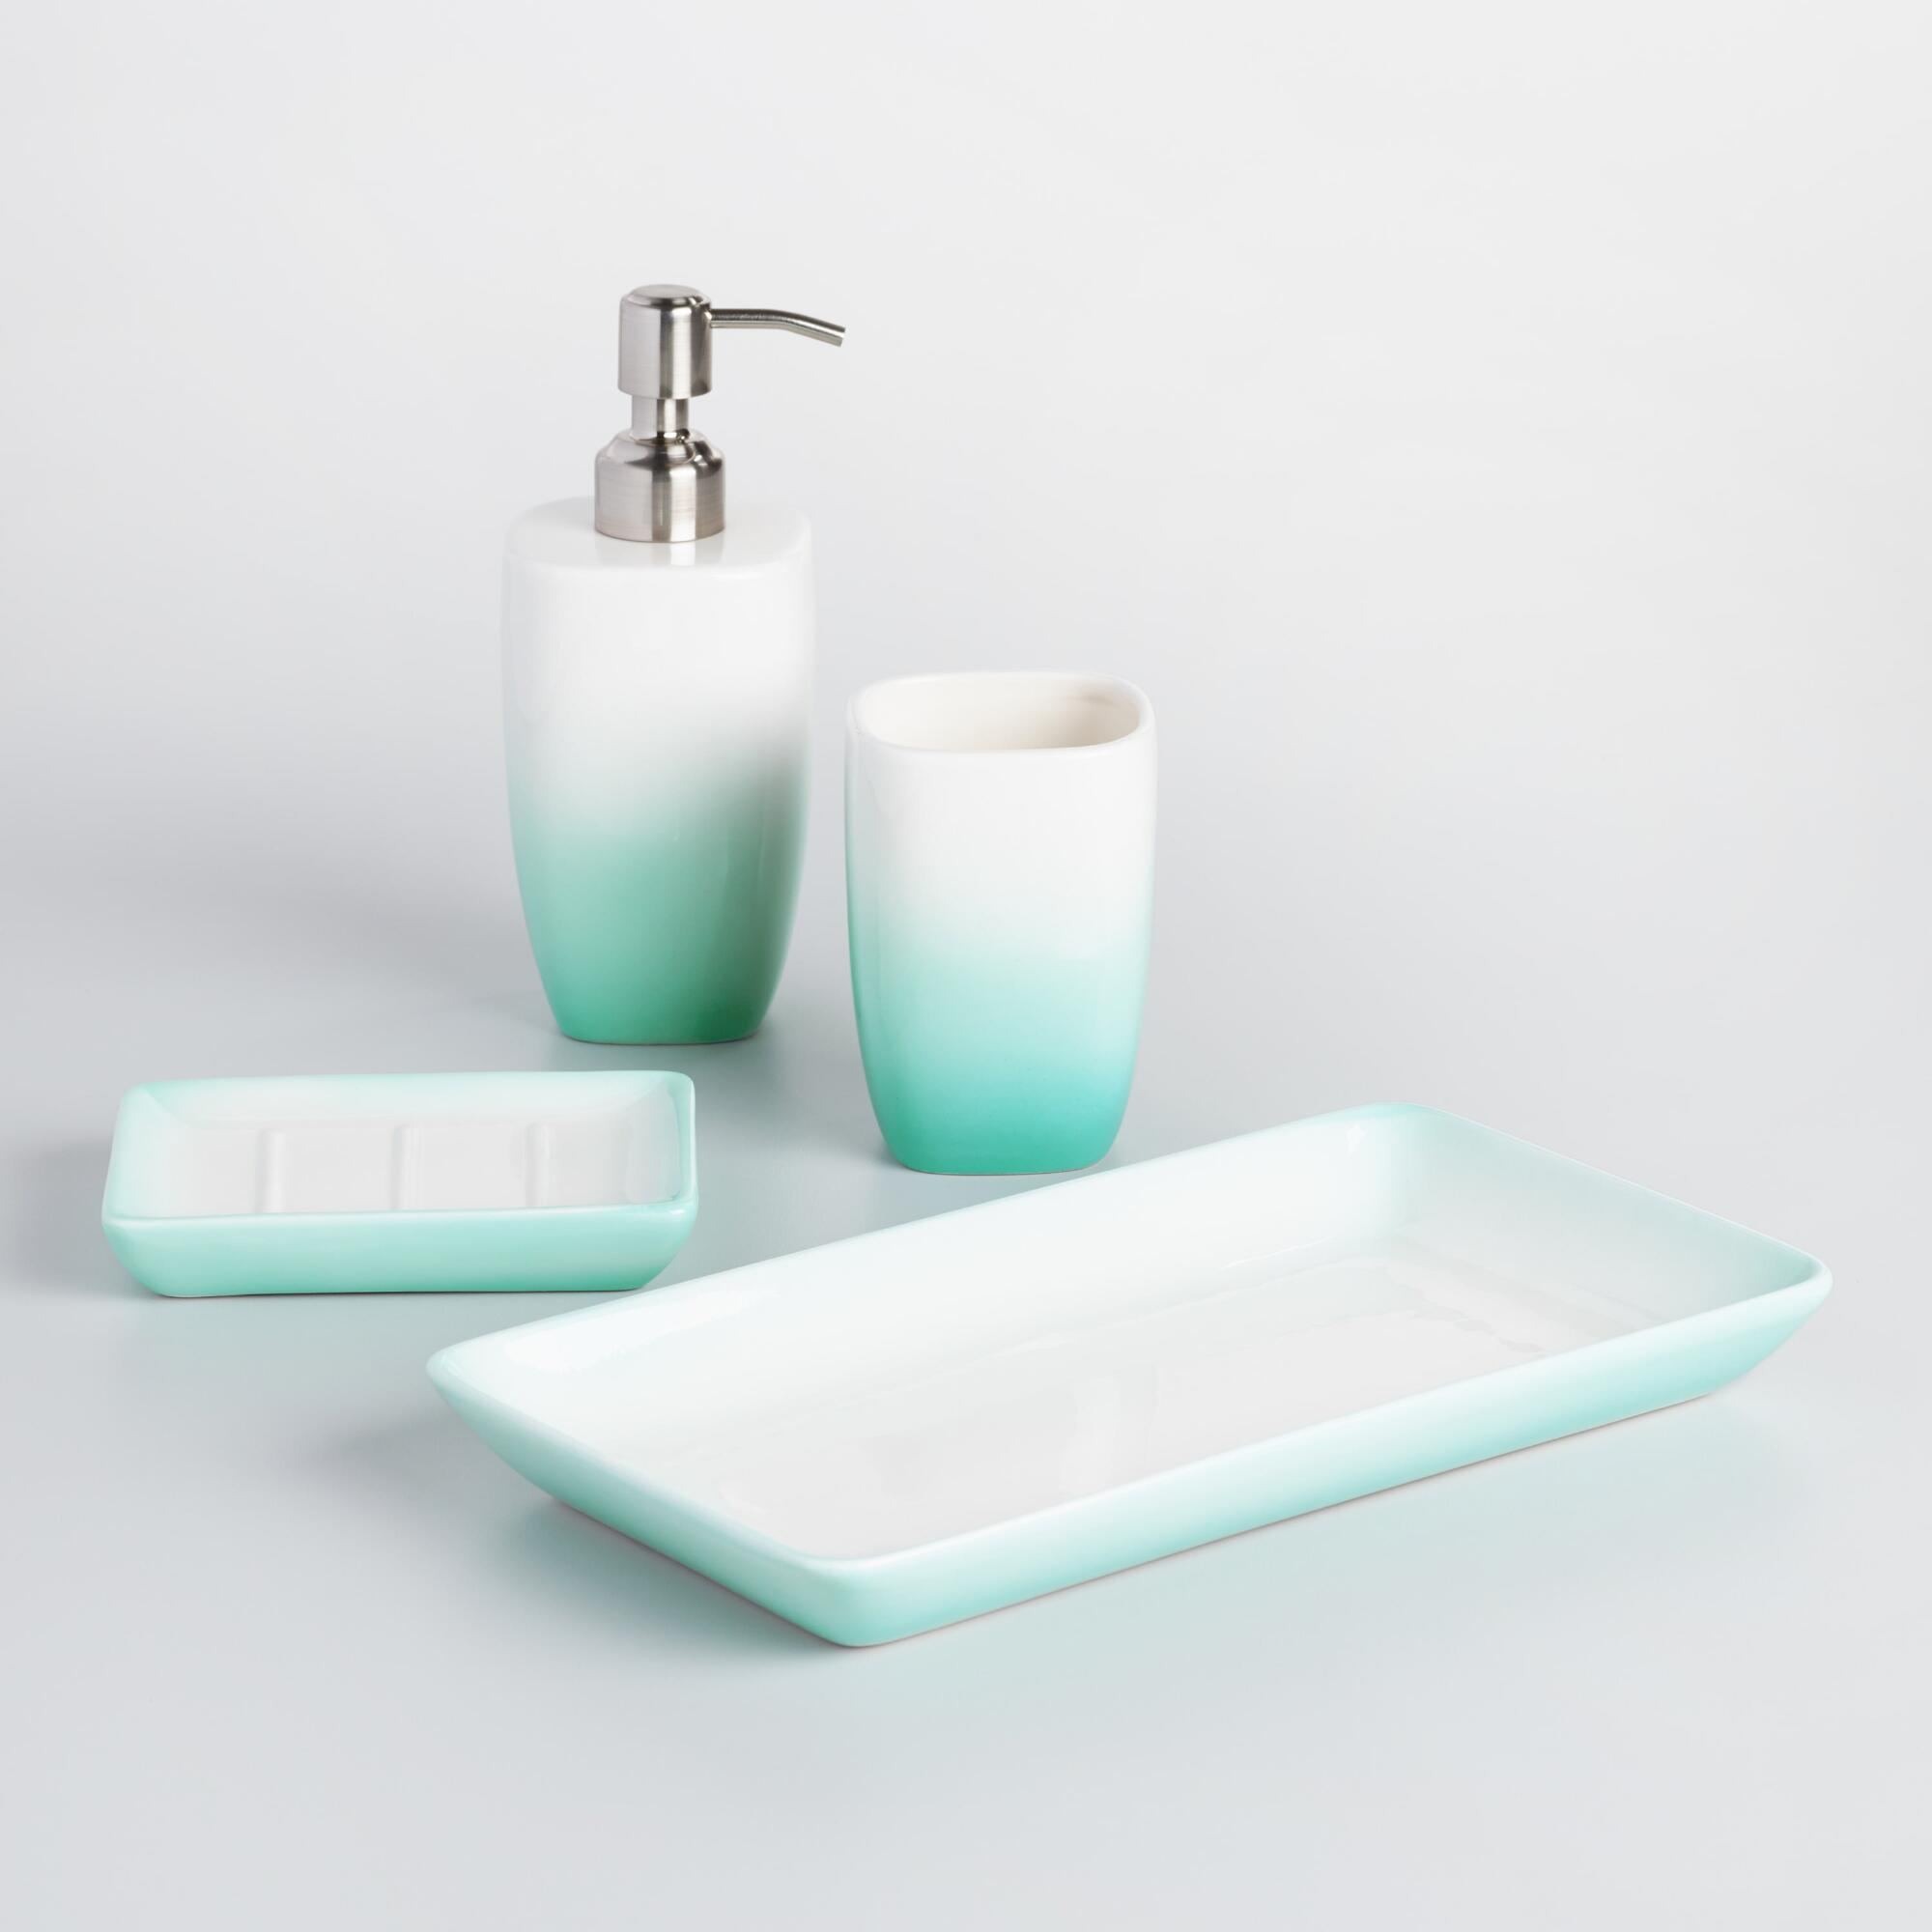 Aqua ombre ceramic bath accessories collection world market for Bathroom accessories images